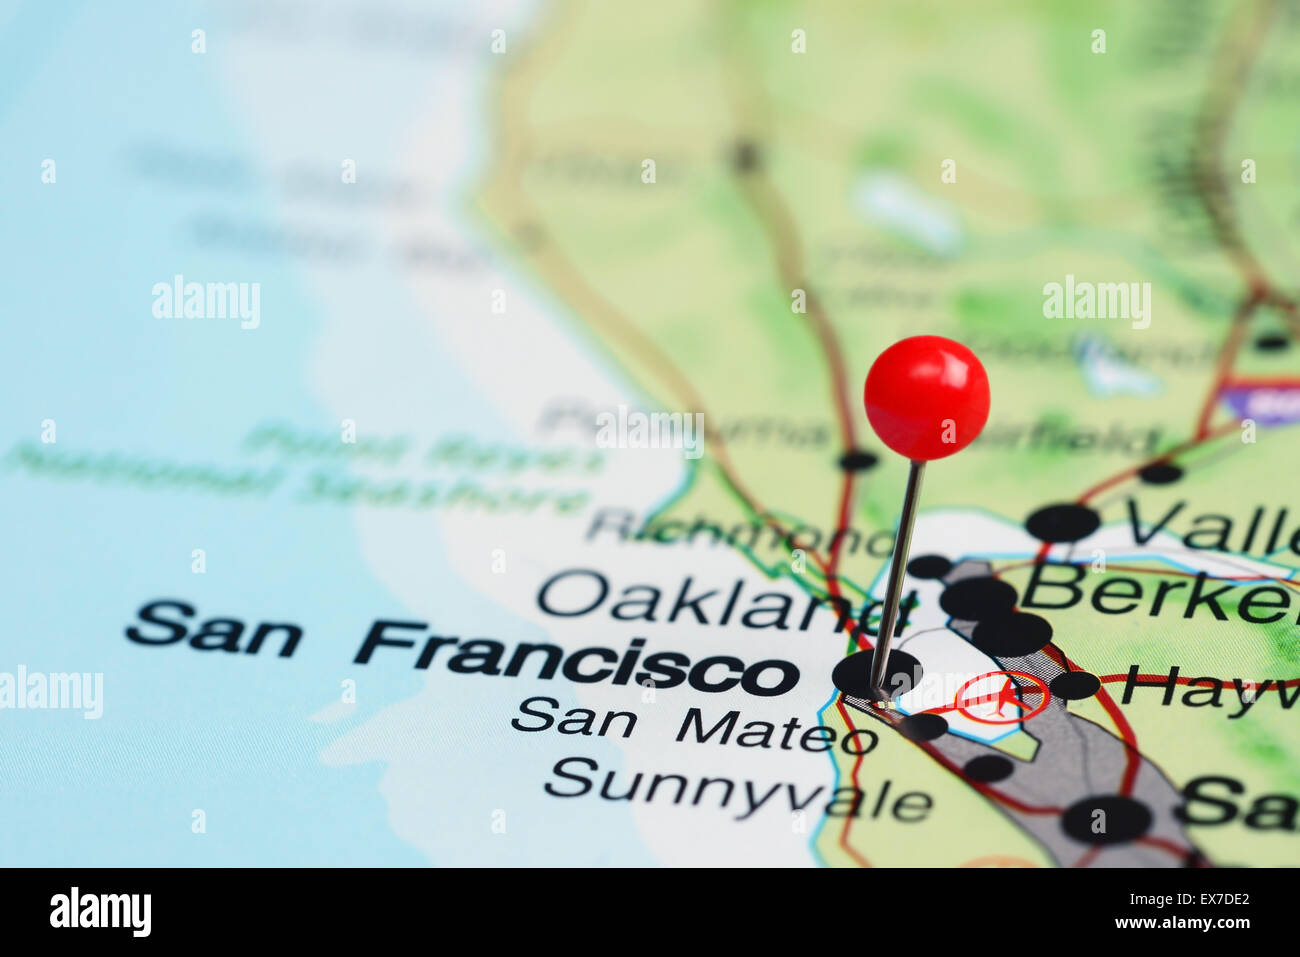 San Francisco pinned on a map of USA Stock Photo: 84986778 ... on corn belt on map of usa, new hampshire on map of usa, south dakota on map of usa, new mexico on map of usa, snake river on map of usa, new madrid on map of usa, arkansas river on map of usa, montana on map of usa, dodge city on map of usa, sierra nevada on map of usa, chesapeake bay on map of usa, pikes peak on map of usa, mt st helens on map of usa, black hills on map of usa, ferguson on map of usa, sierra mountains on map of usa, salt lake city on map of usa, mojave desert on map of usa, mt rushmore on map of usa, jackson on map of usa,